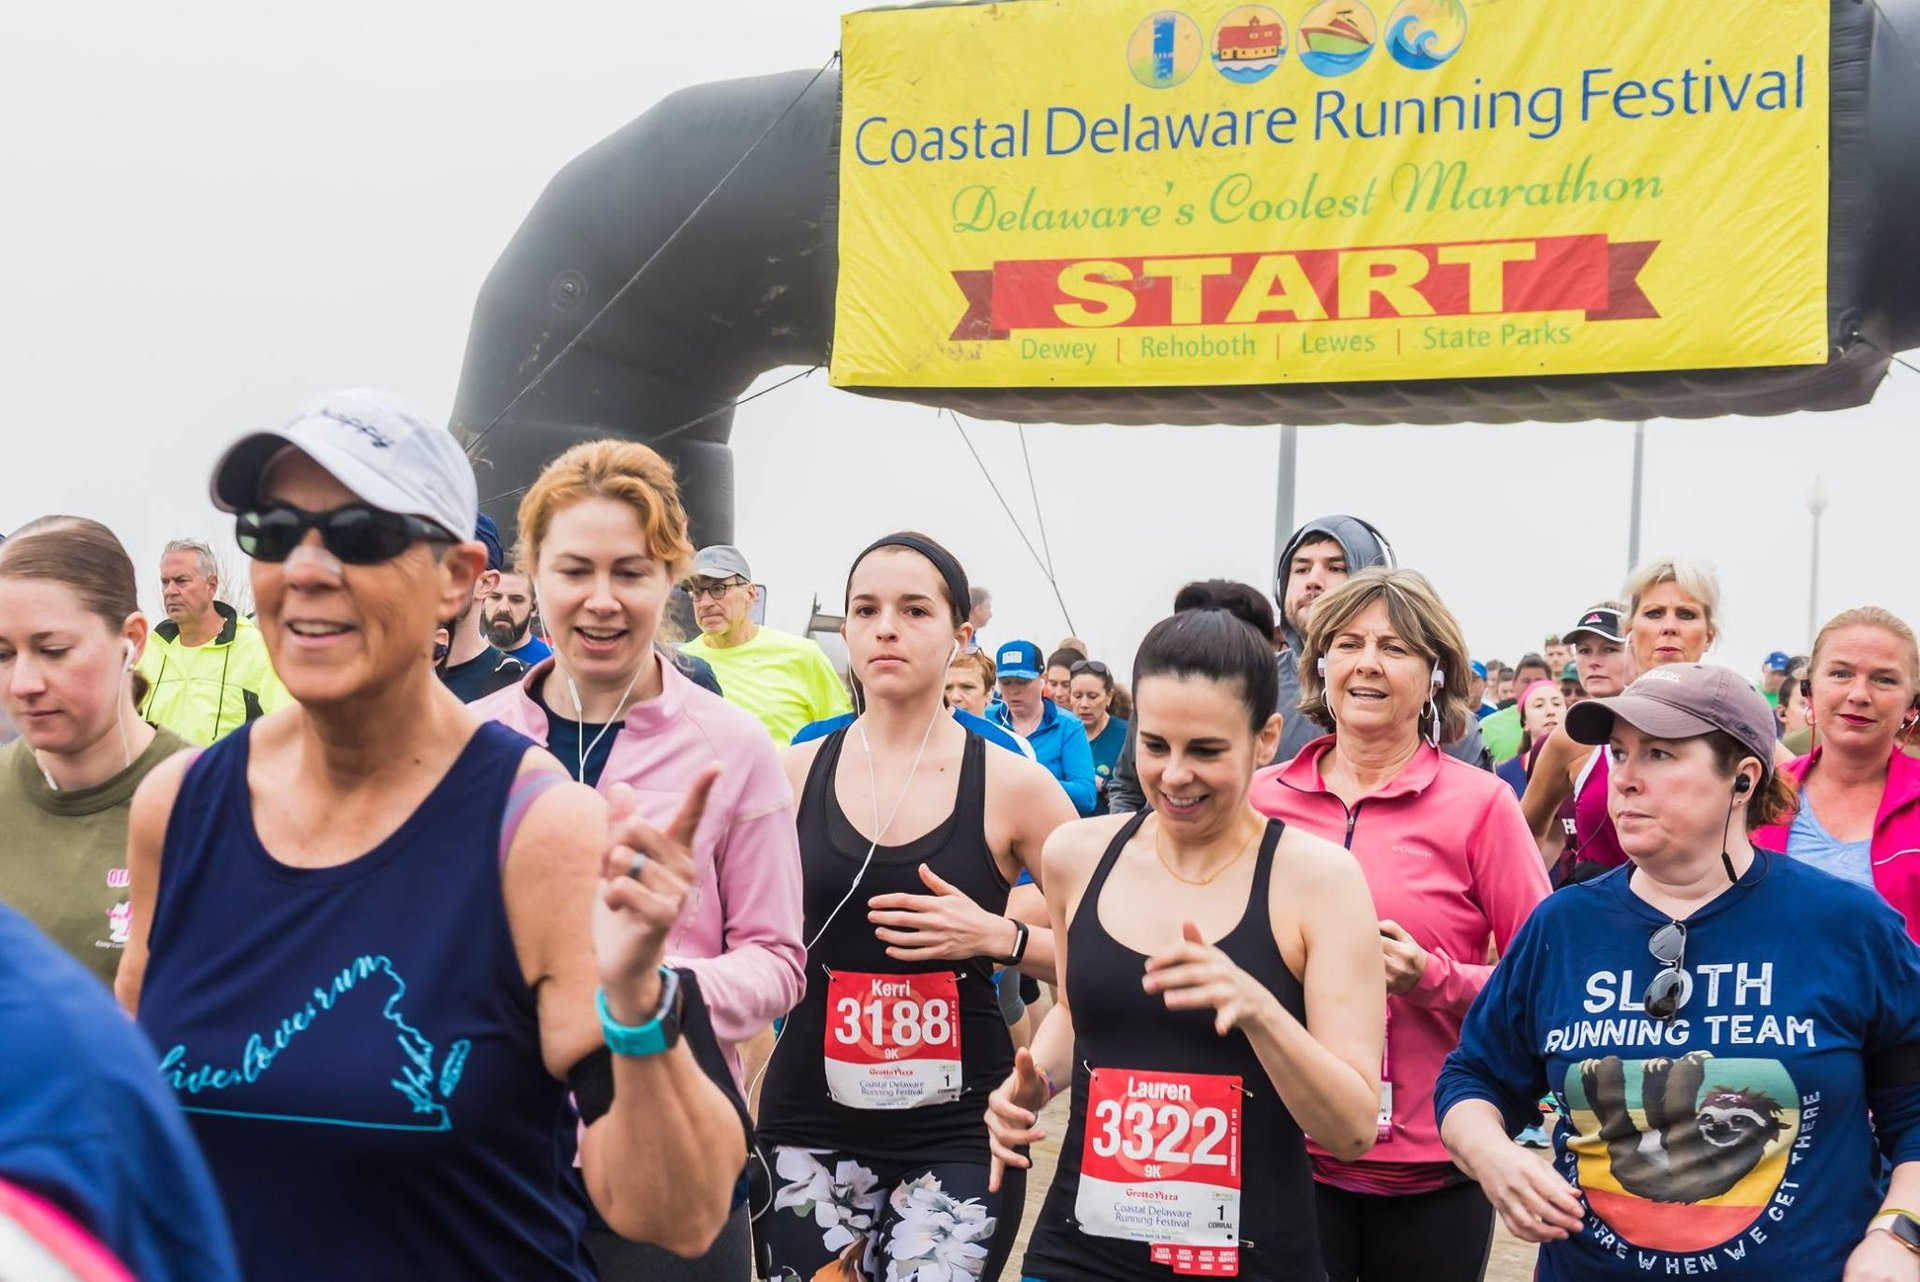 Coastal Delaware Running Festival in Delaware 2020 - Best Time